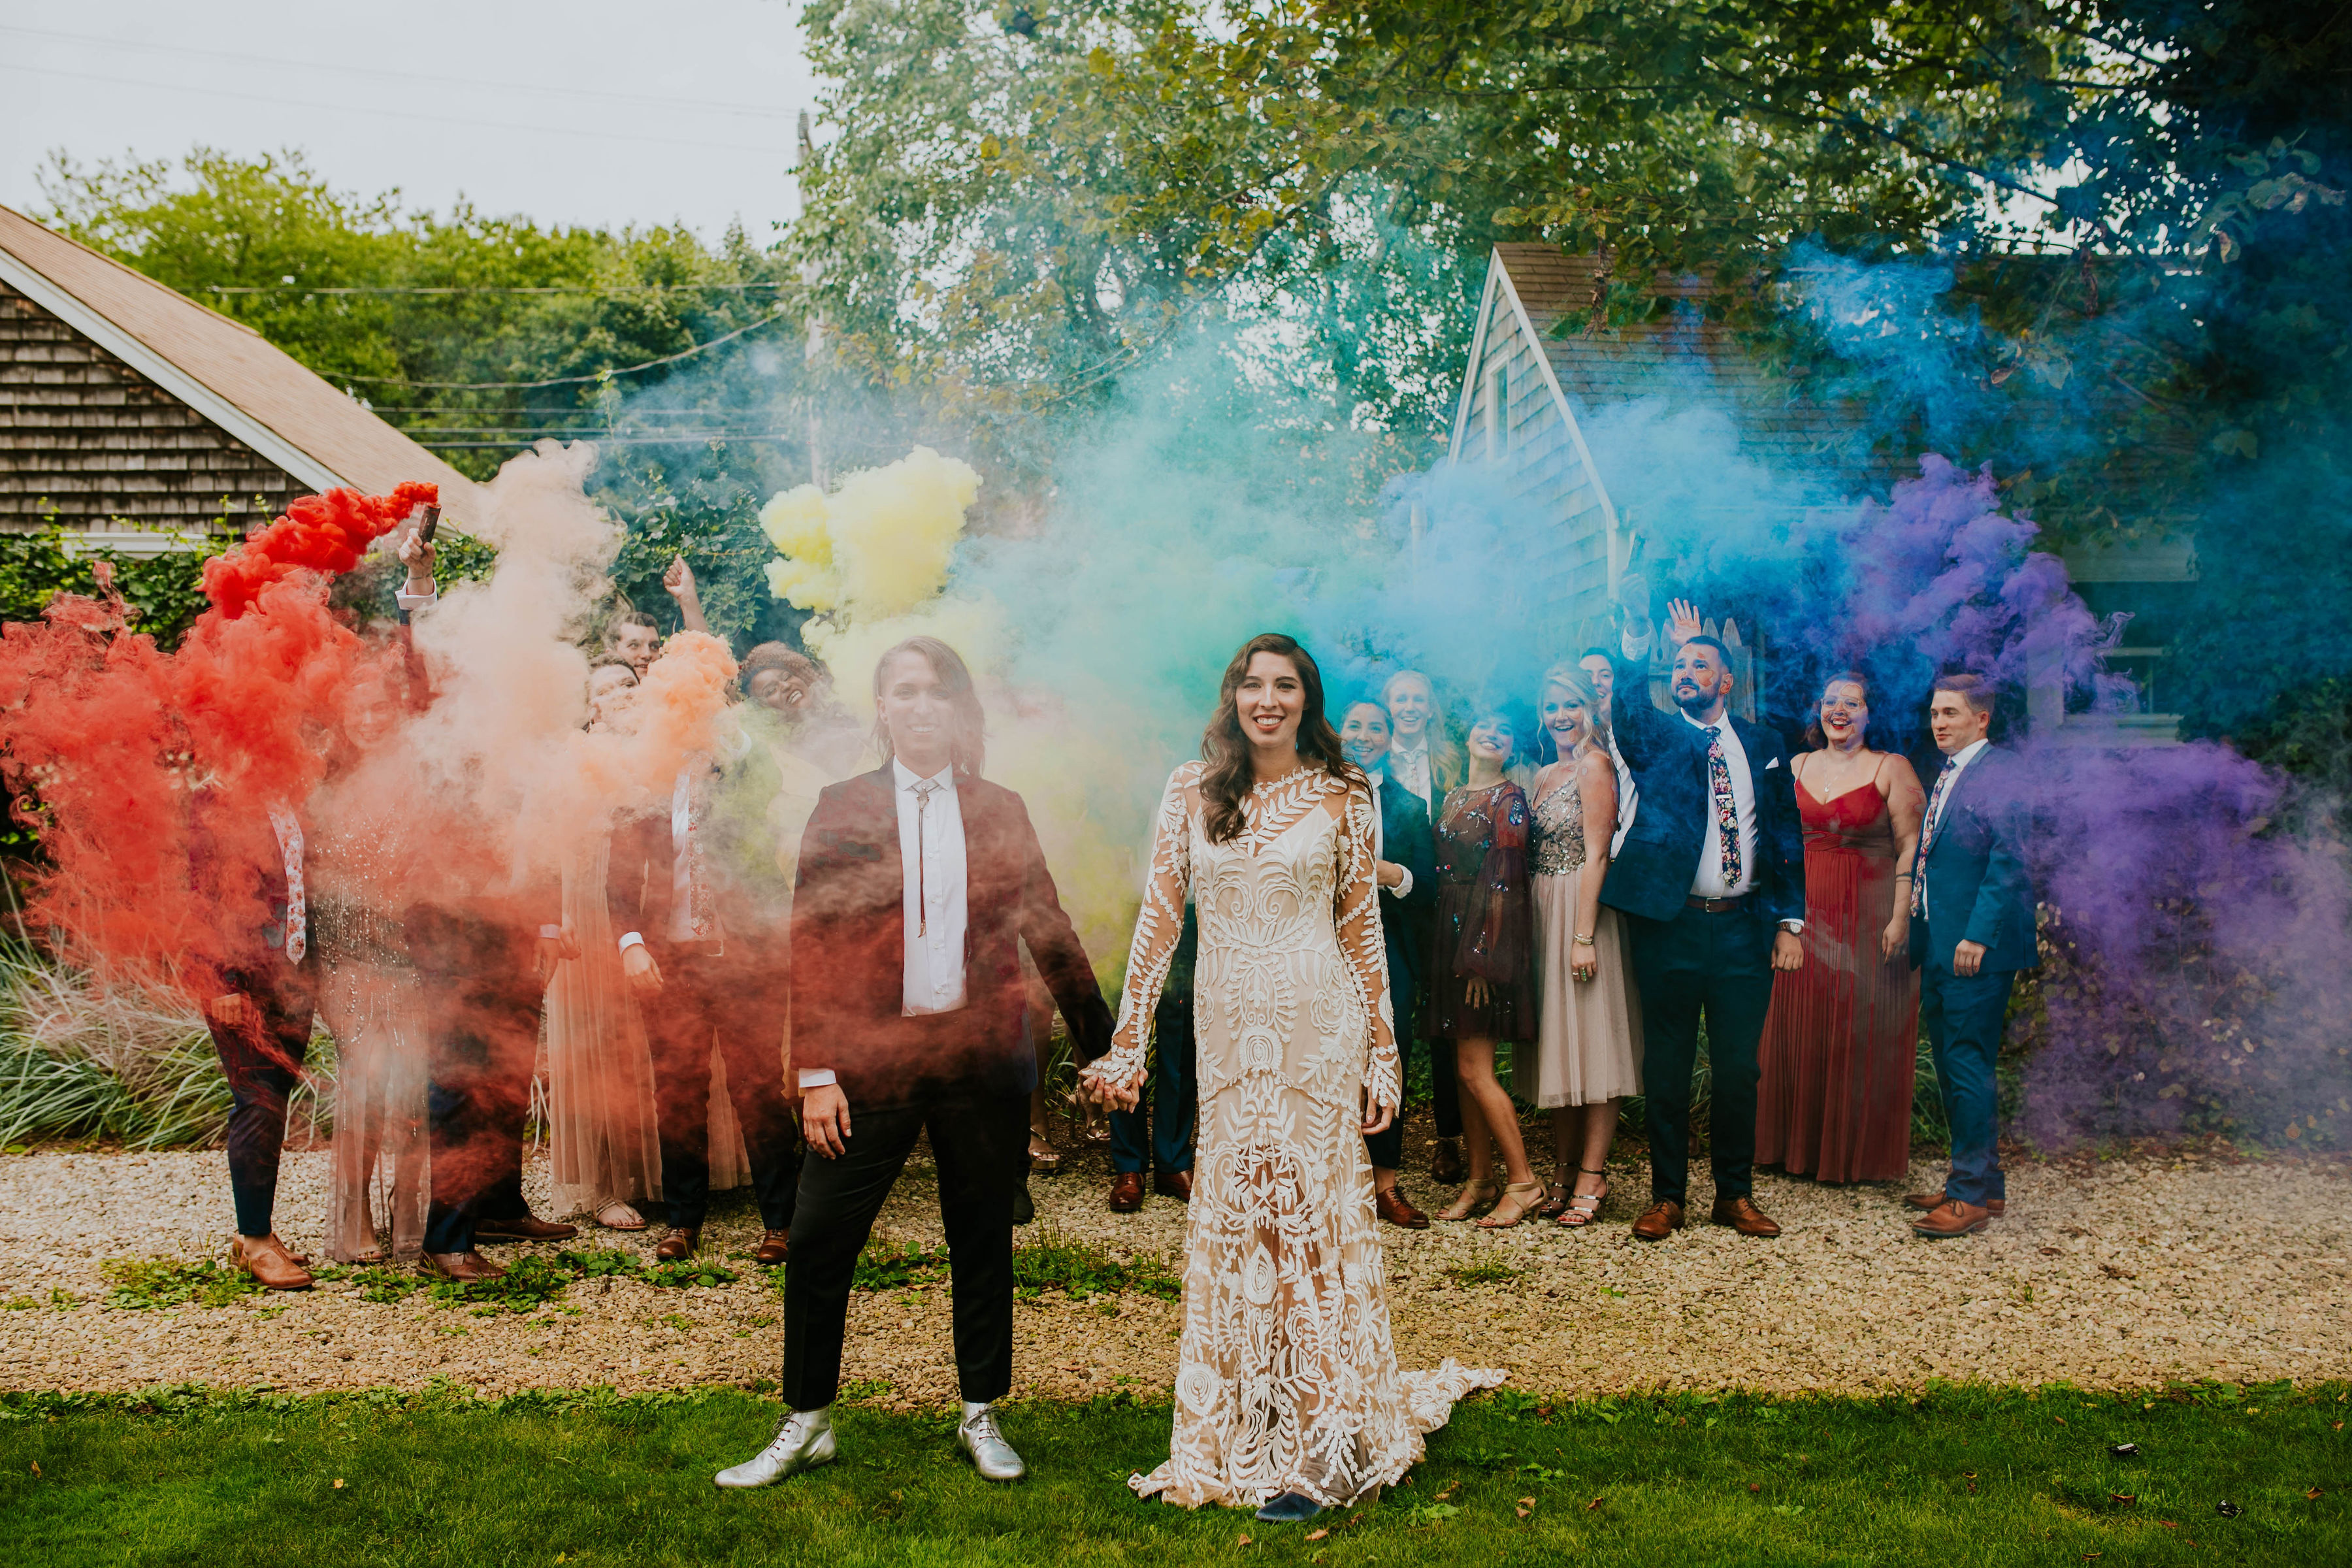 How to plan an Instagram-worthy wedding - The Boston Globe